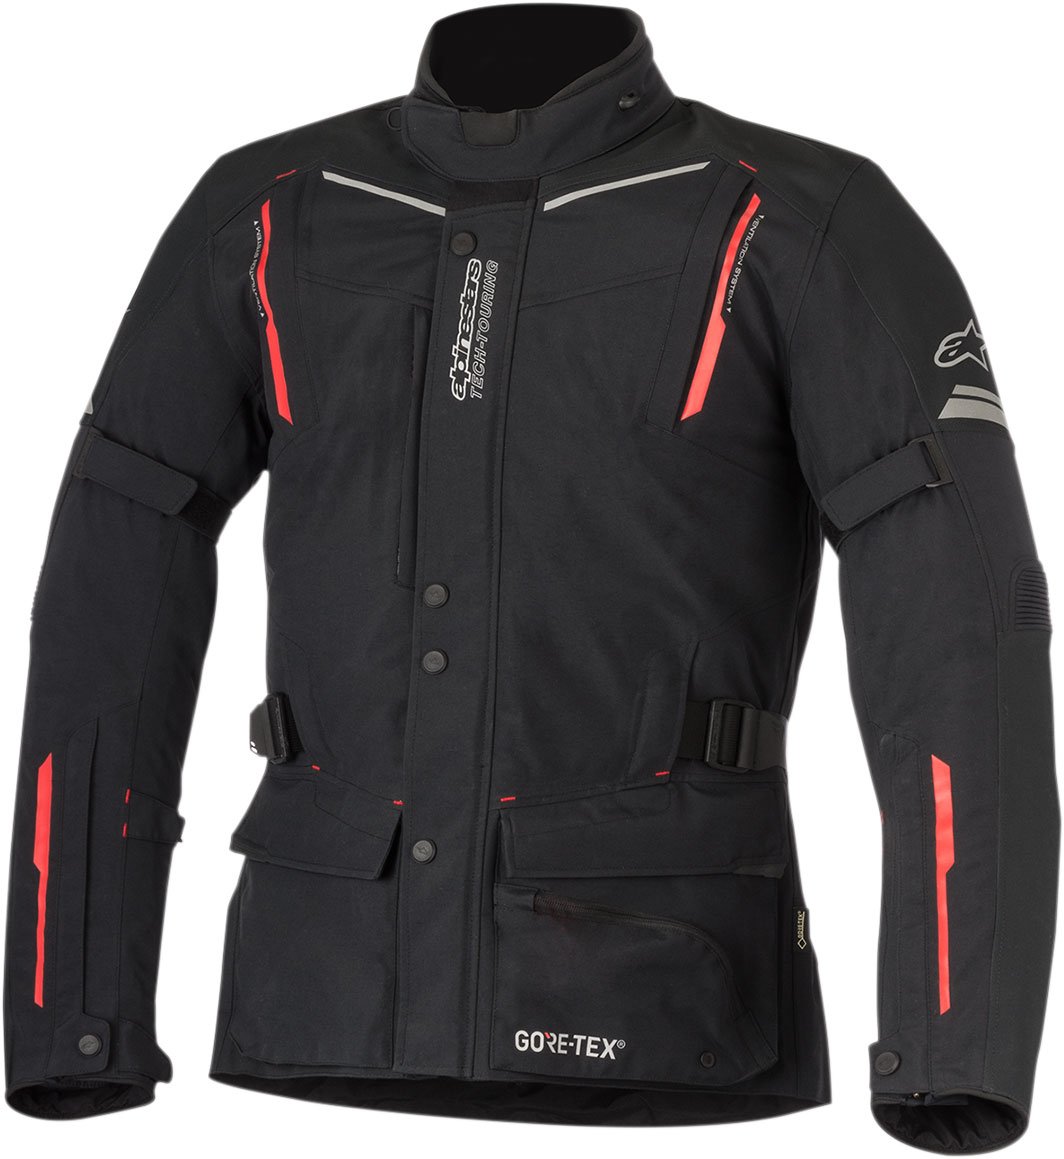 Alpinestars GUAYANA Drystar Adventure-Touring Jacket (Black/Red)